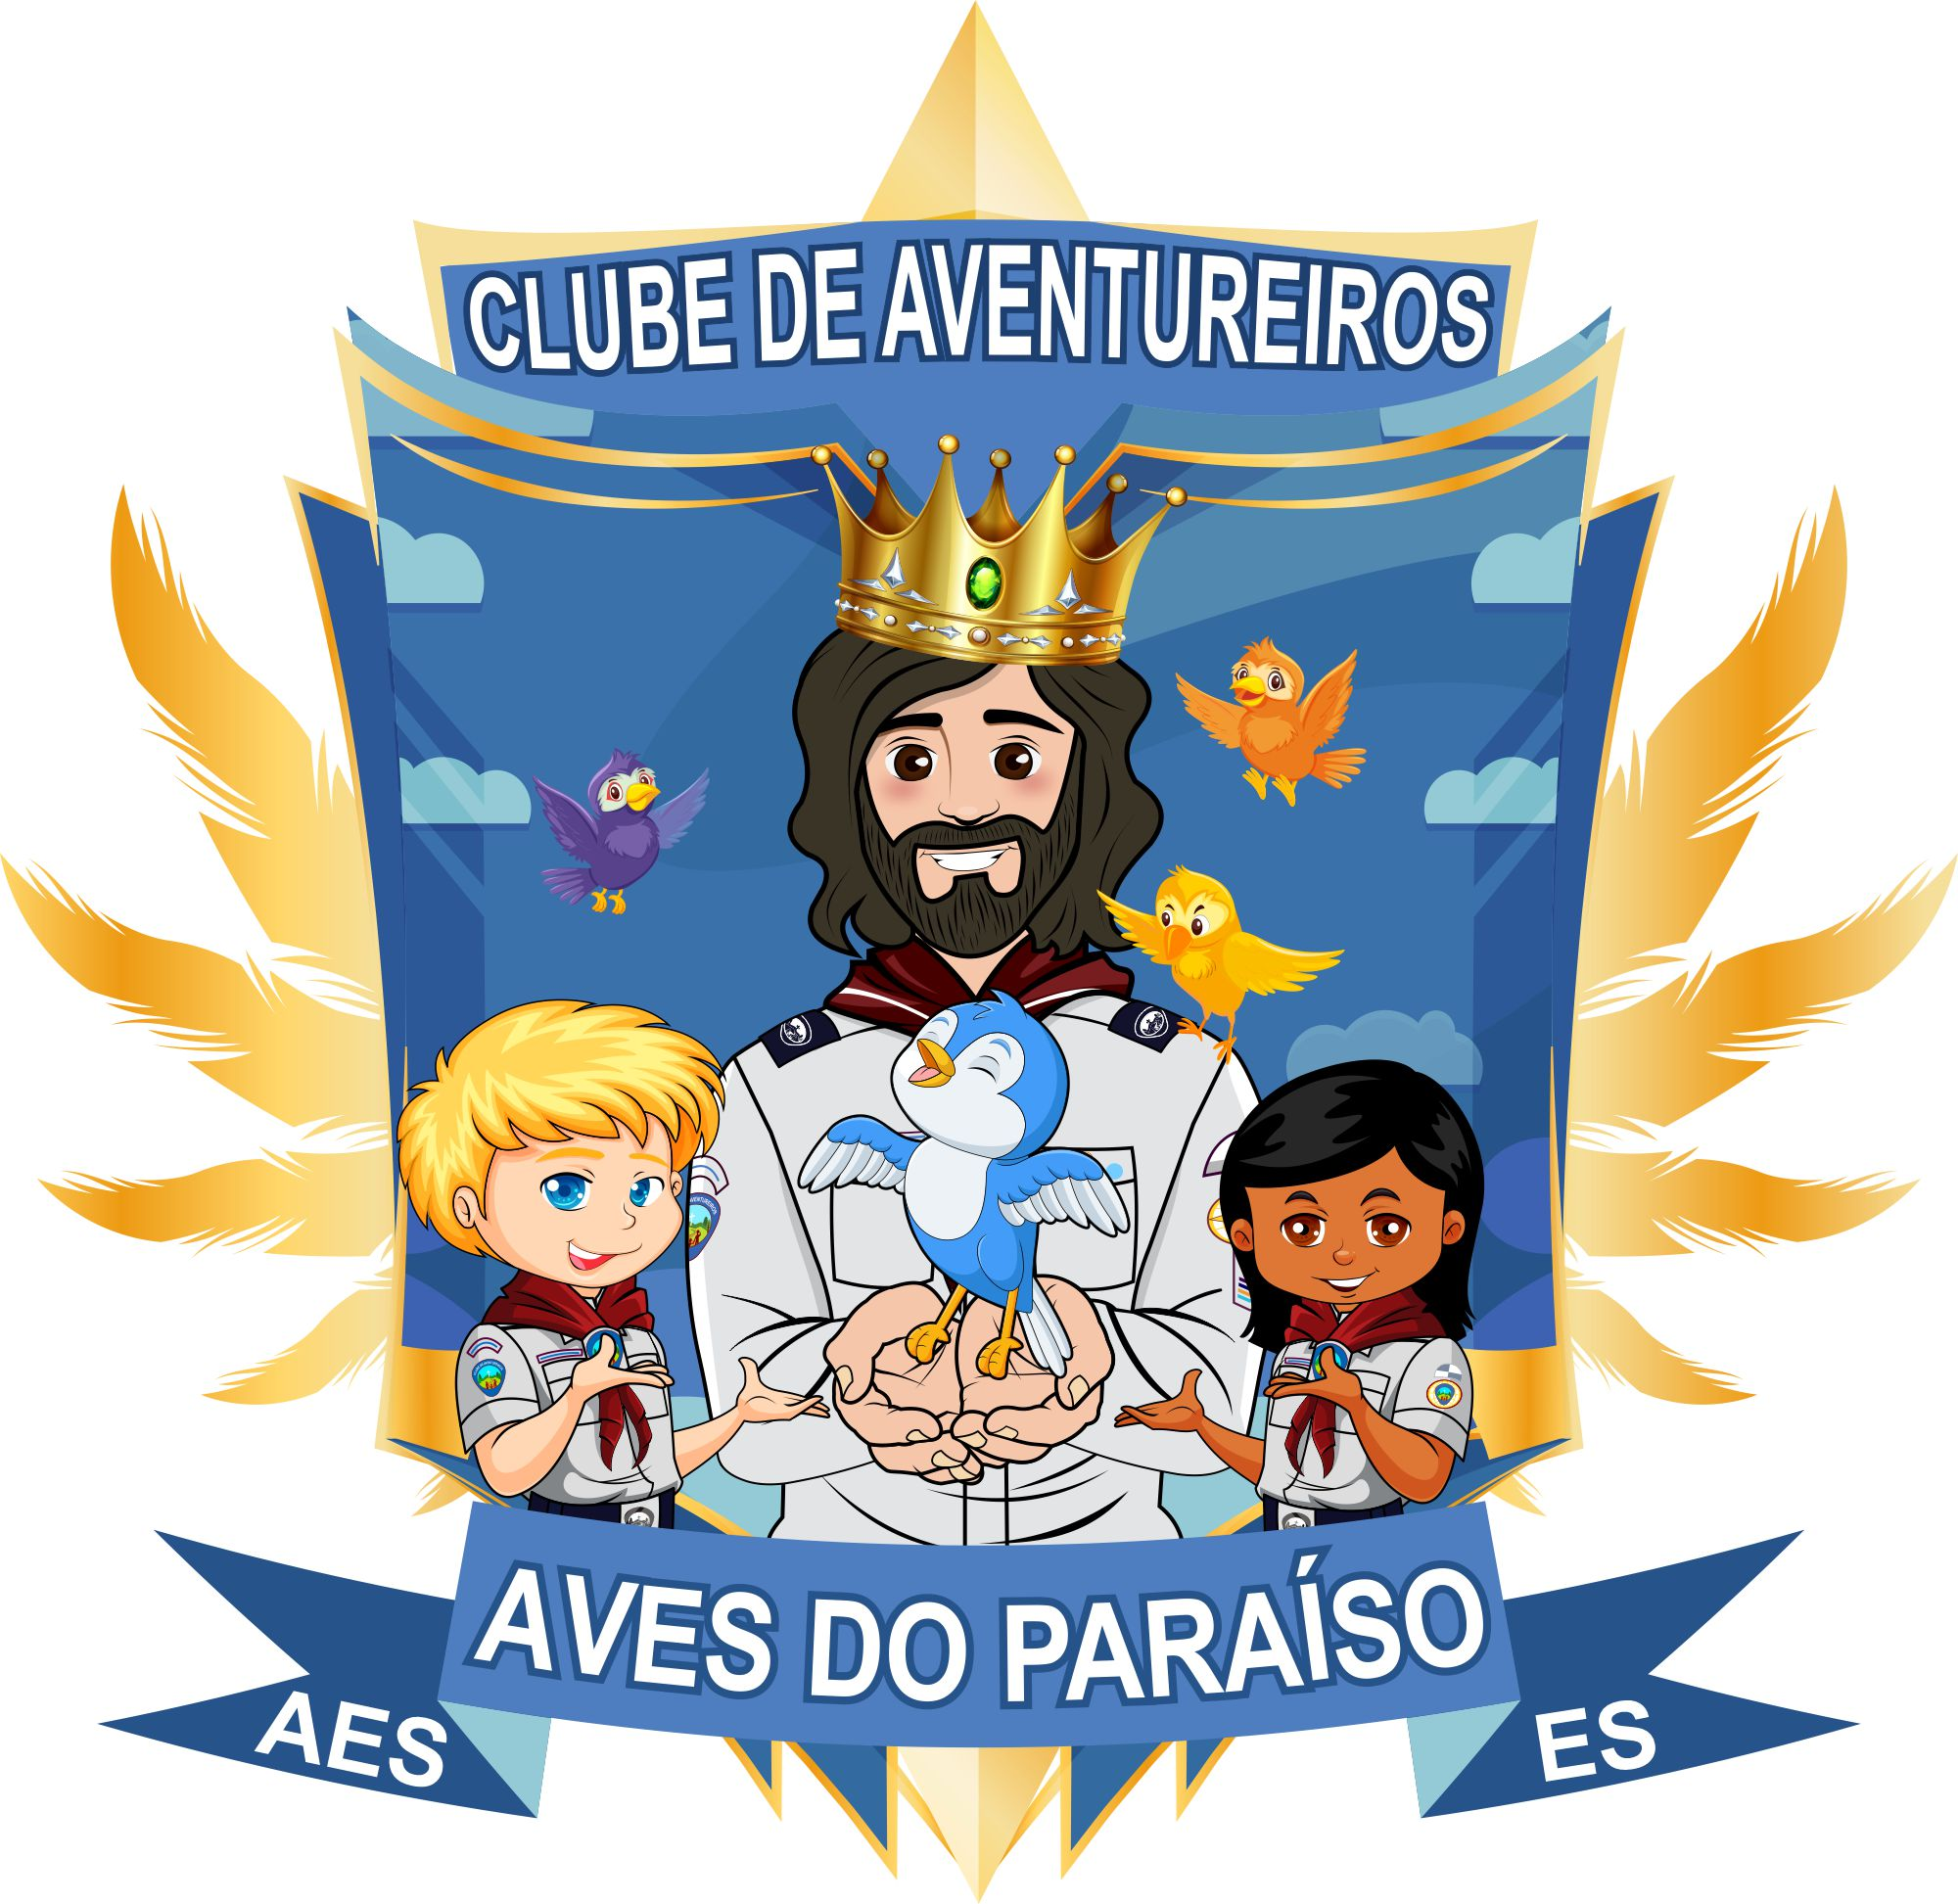 Ave do Paraiso - AV